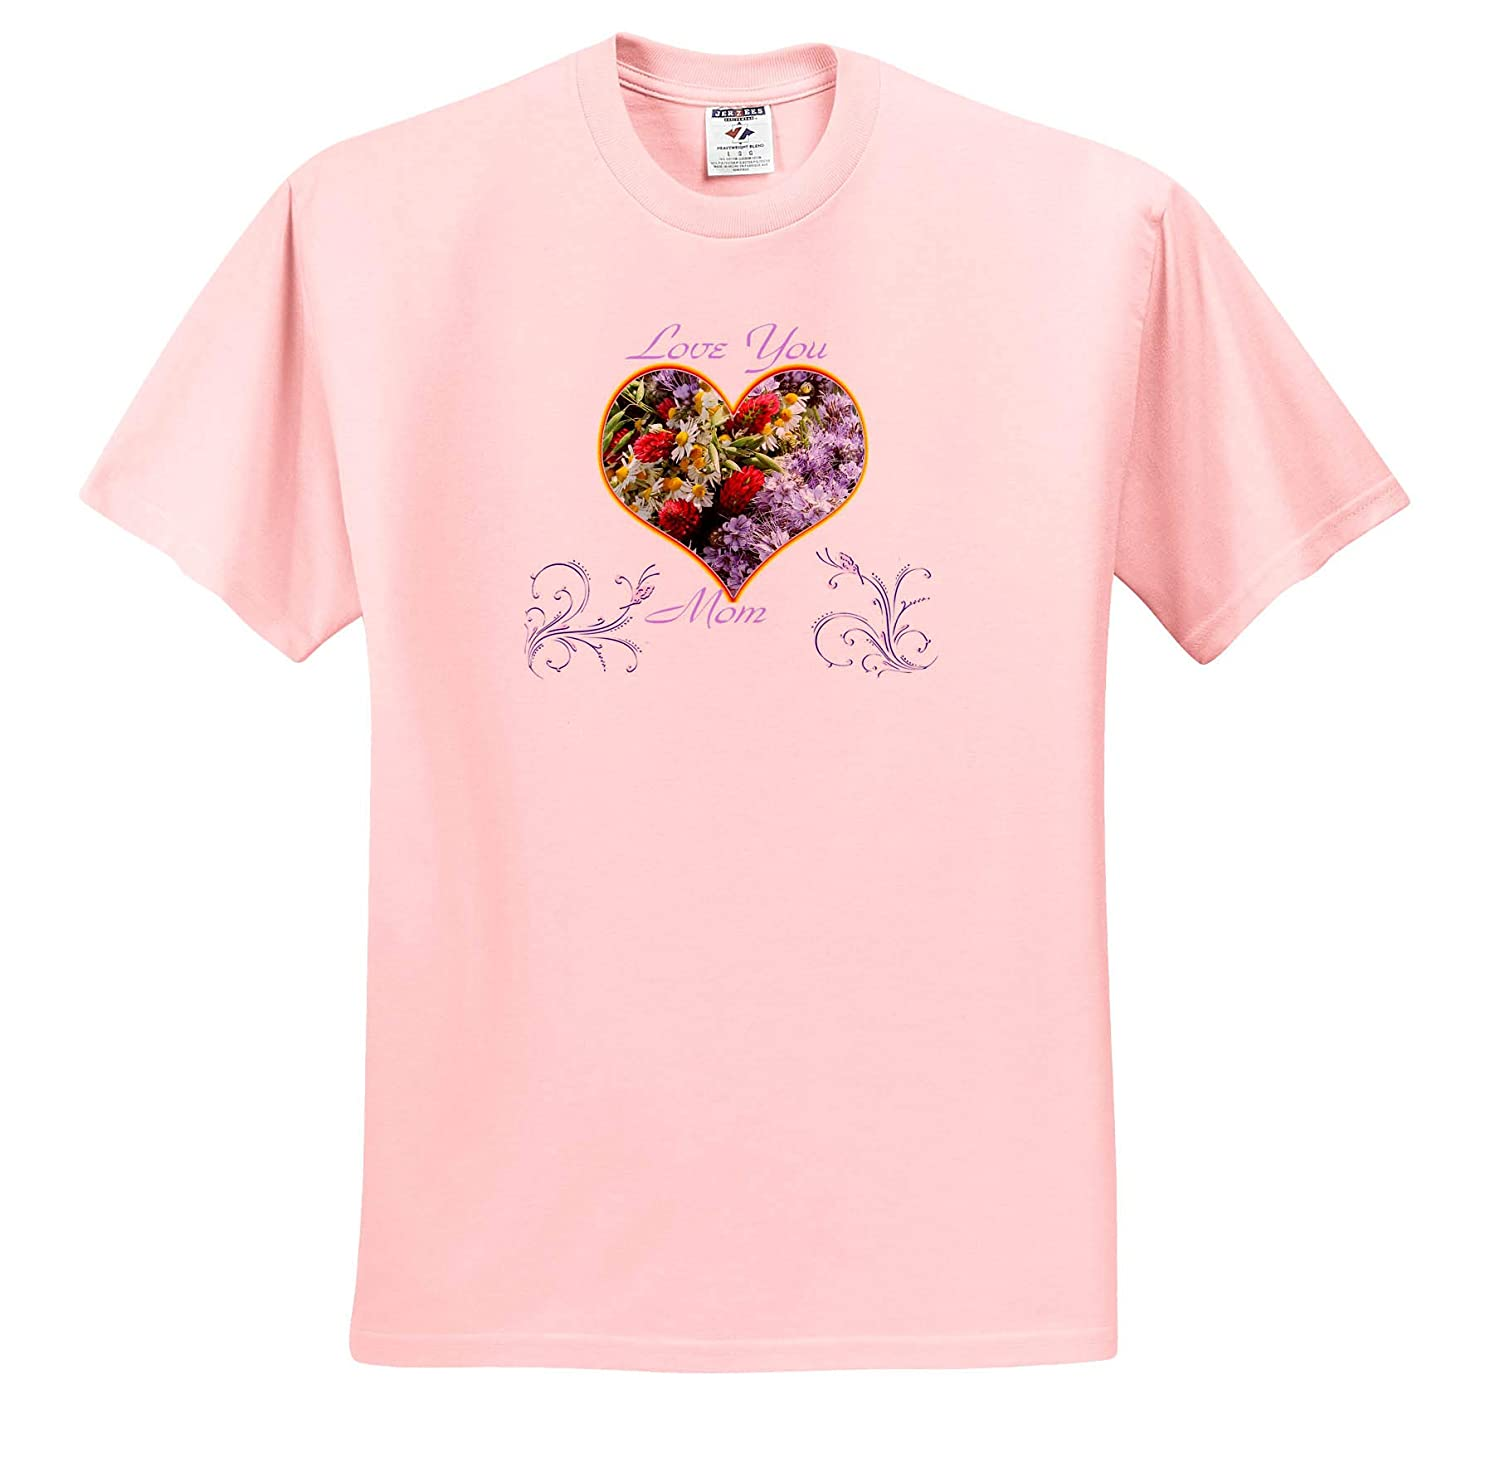 3dRose Lens Art by Florene Mothers Day T-Shirts Image of Love You Mom in Heart of Flowers with Violet Scrolls